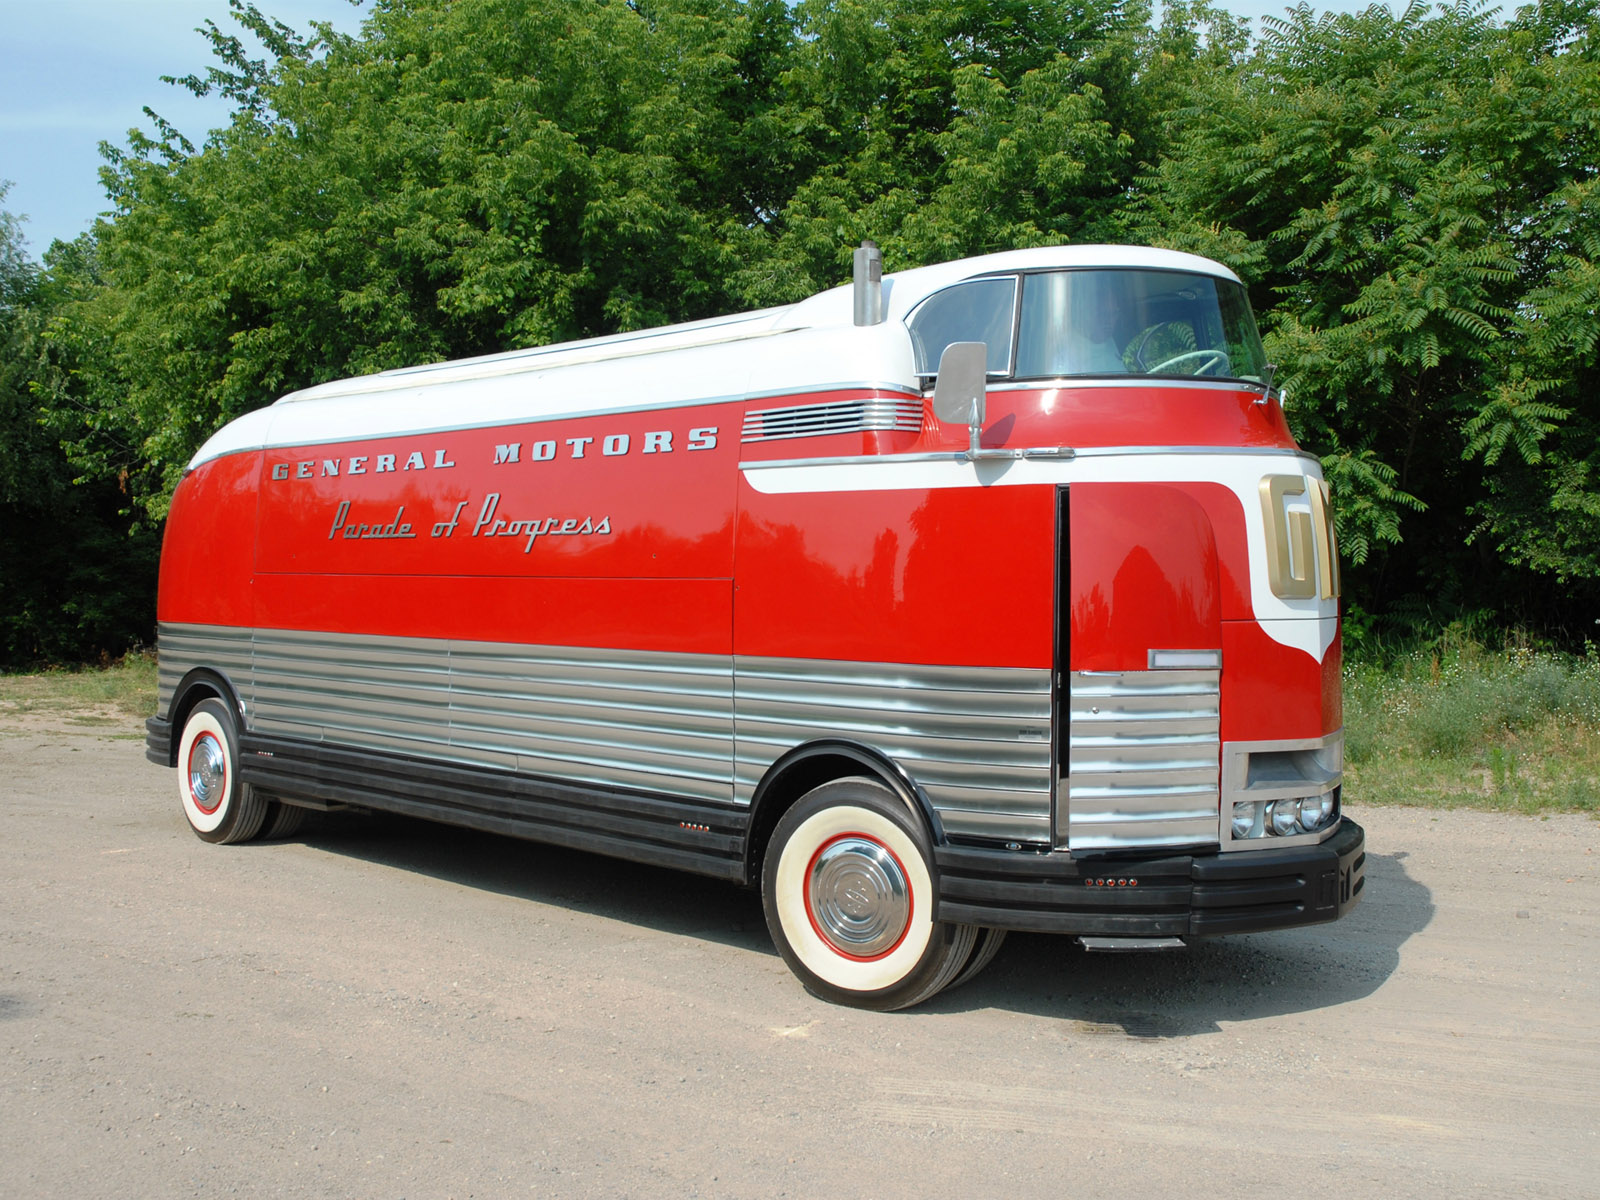 Gm Futurliner 1940 Gm Futurliner 1940 Photo 03 – Car in pictures